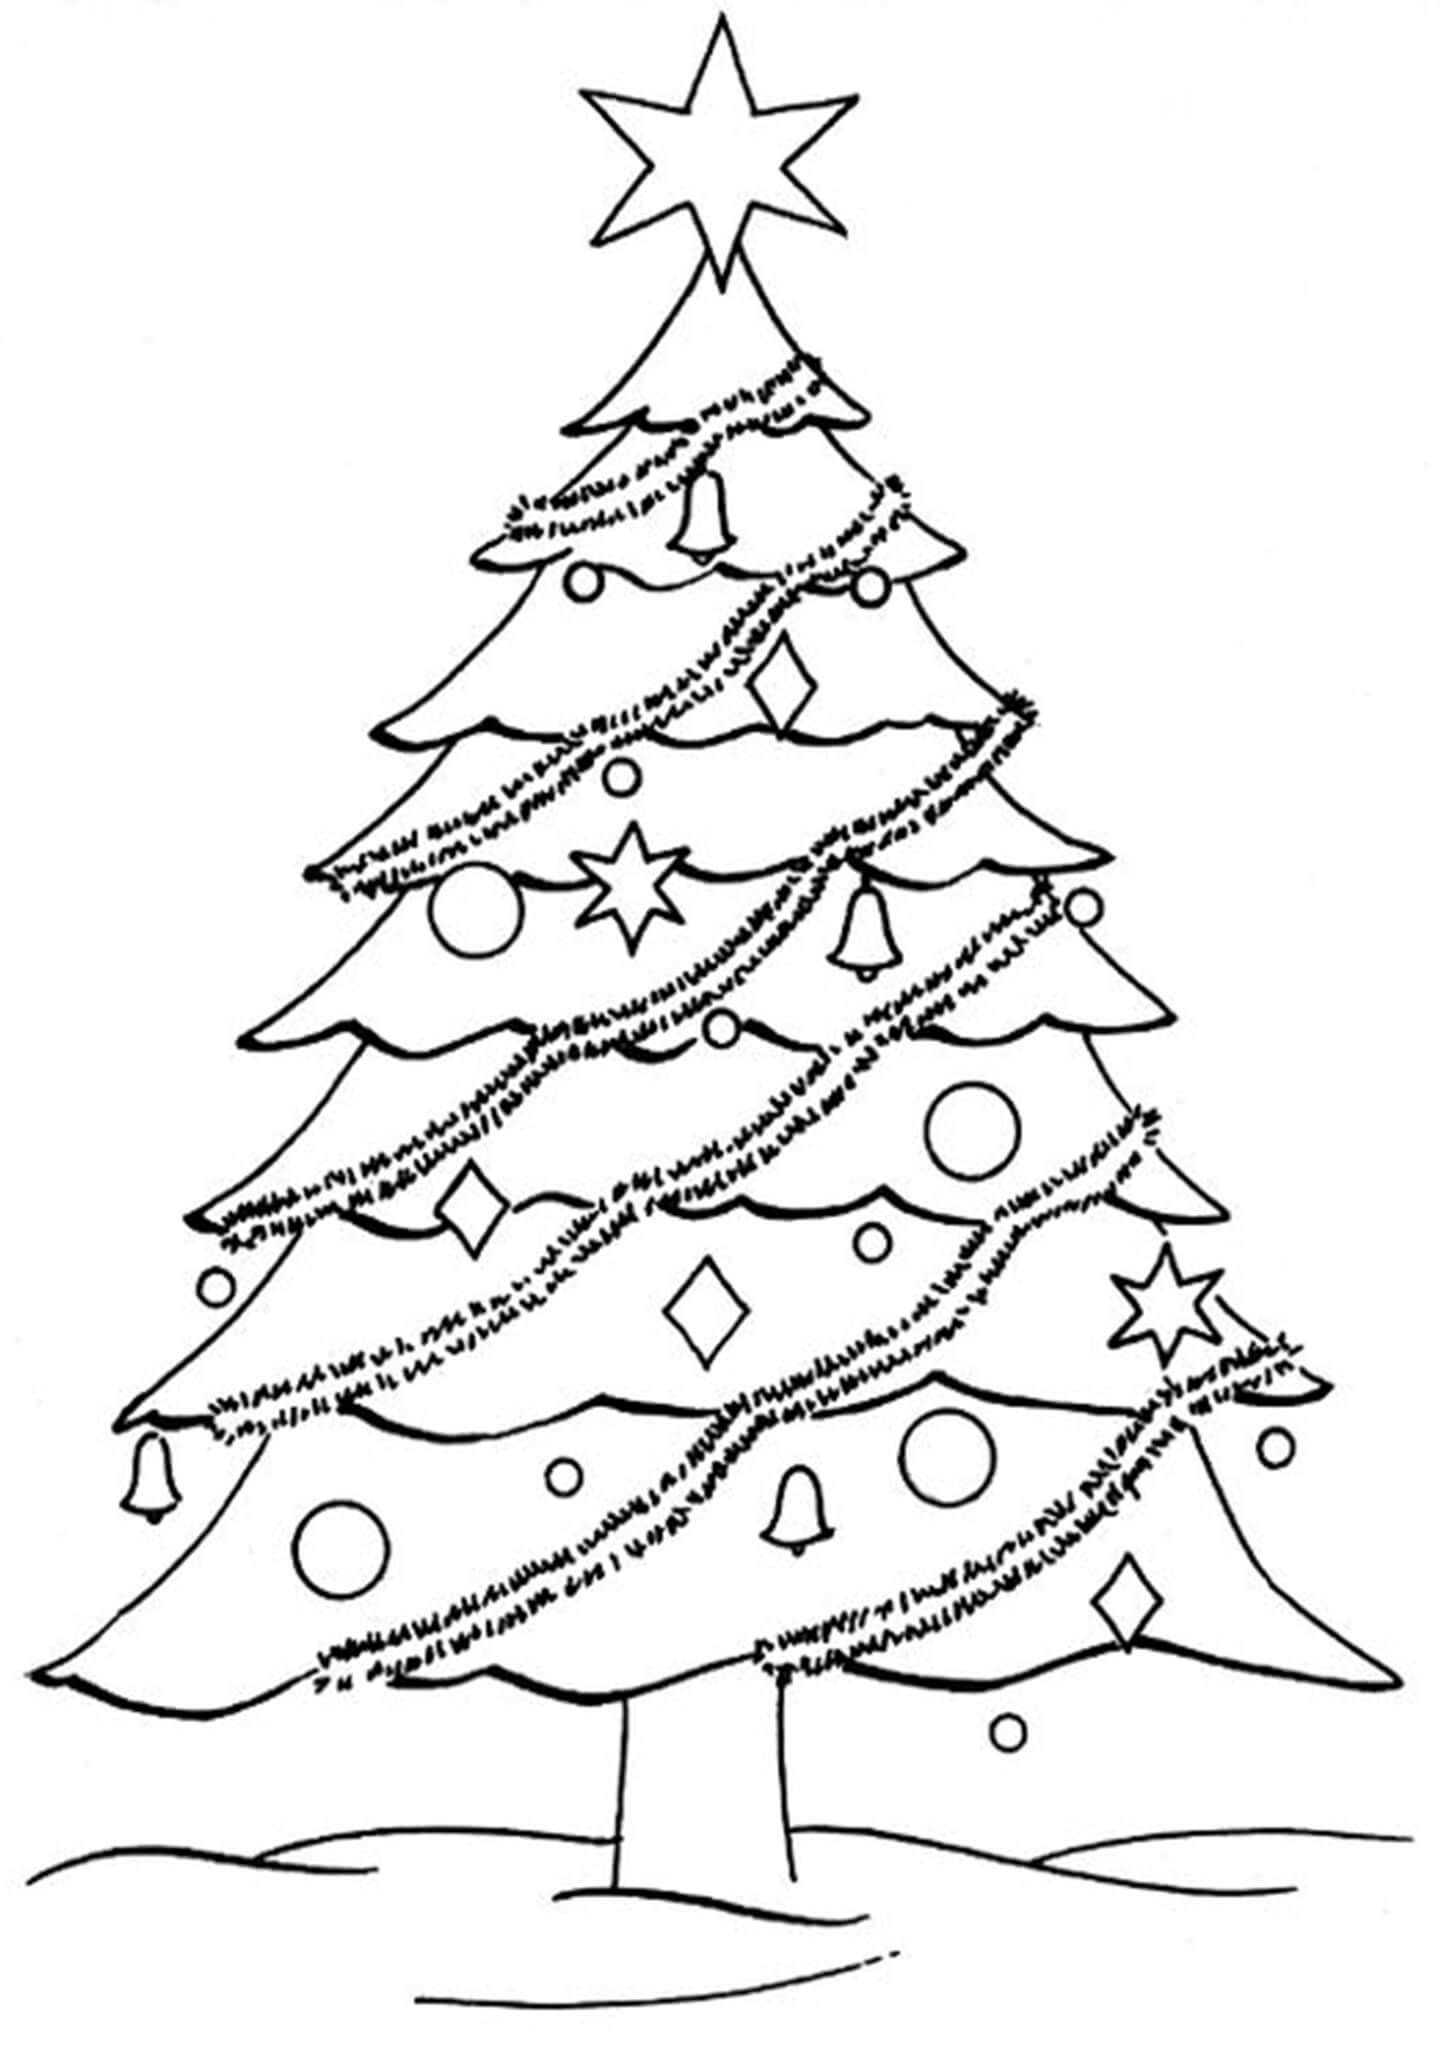 How to Draw a Realistic Christmas tree - Tutorial - YouTube